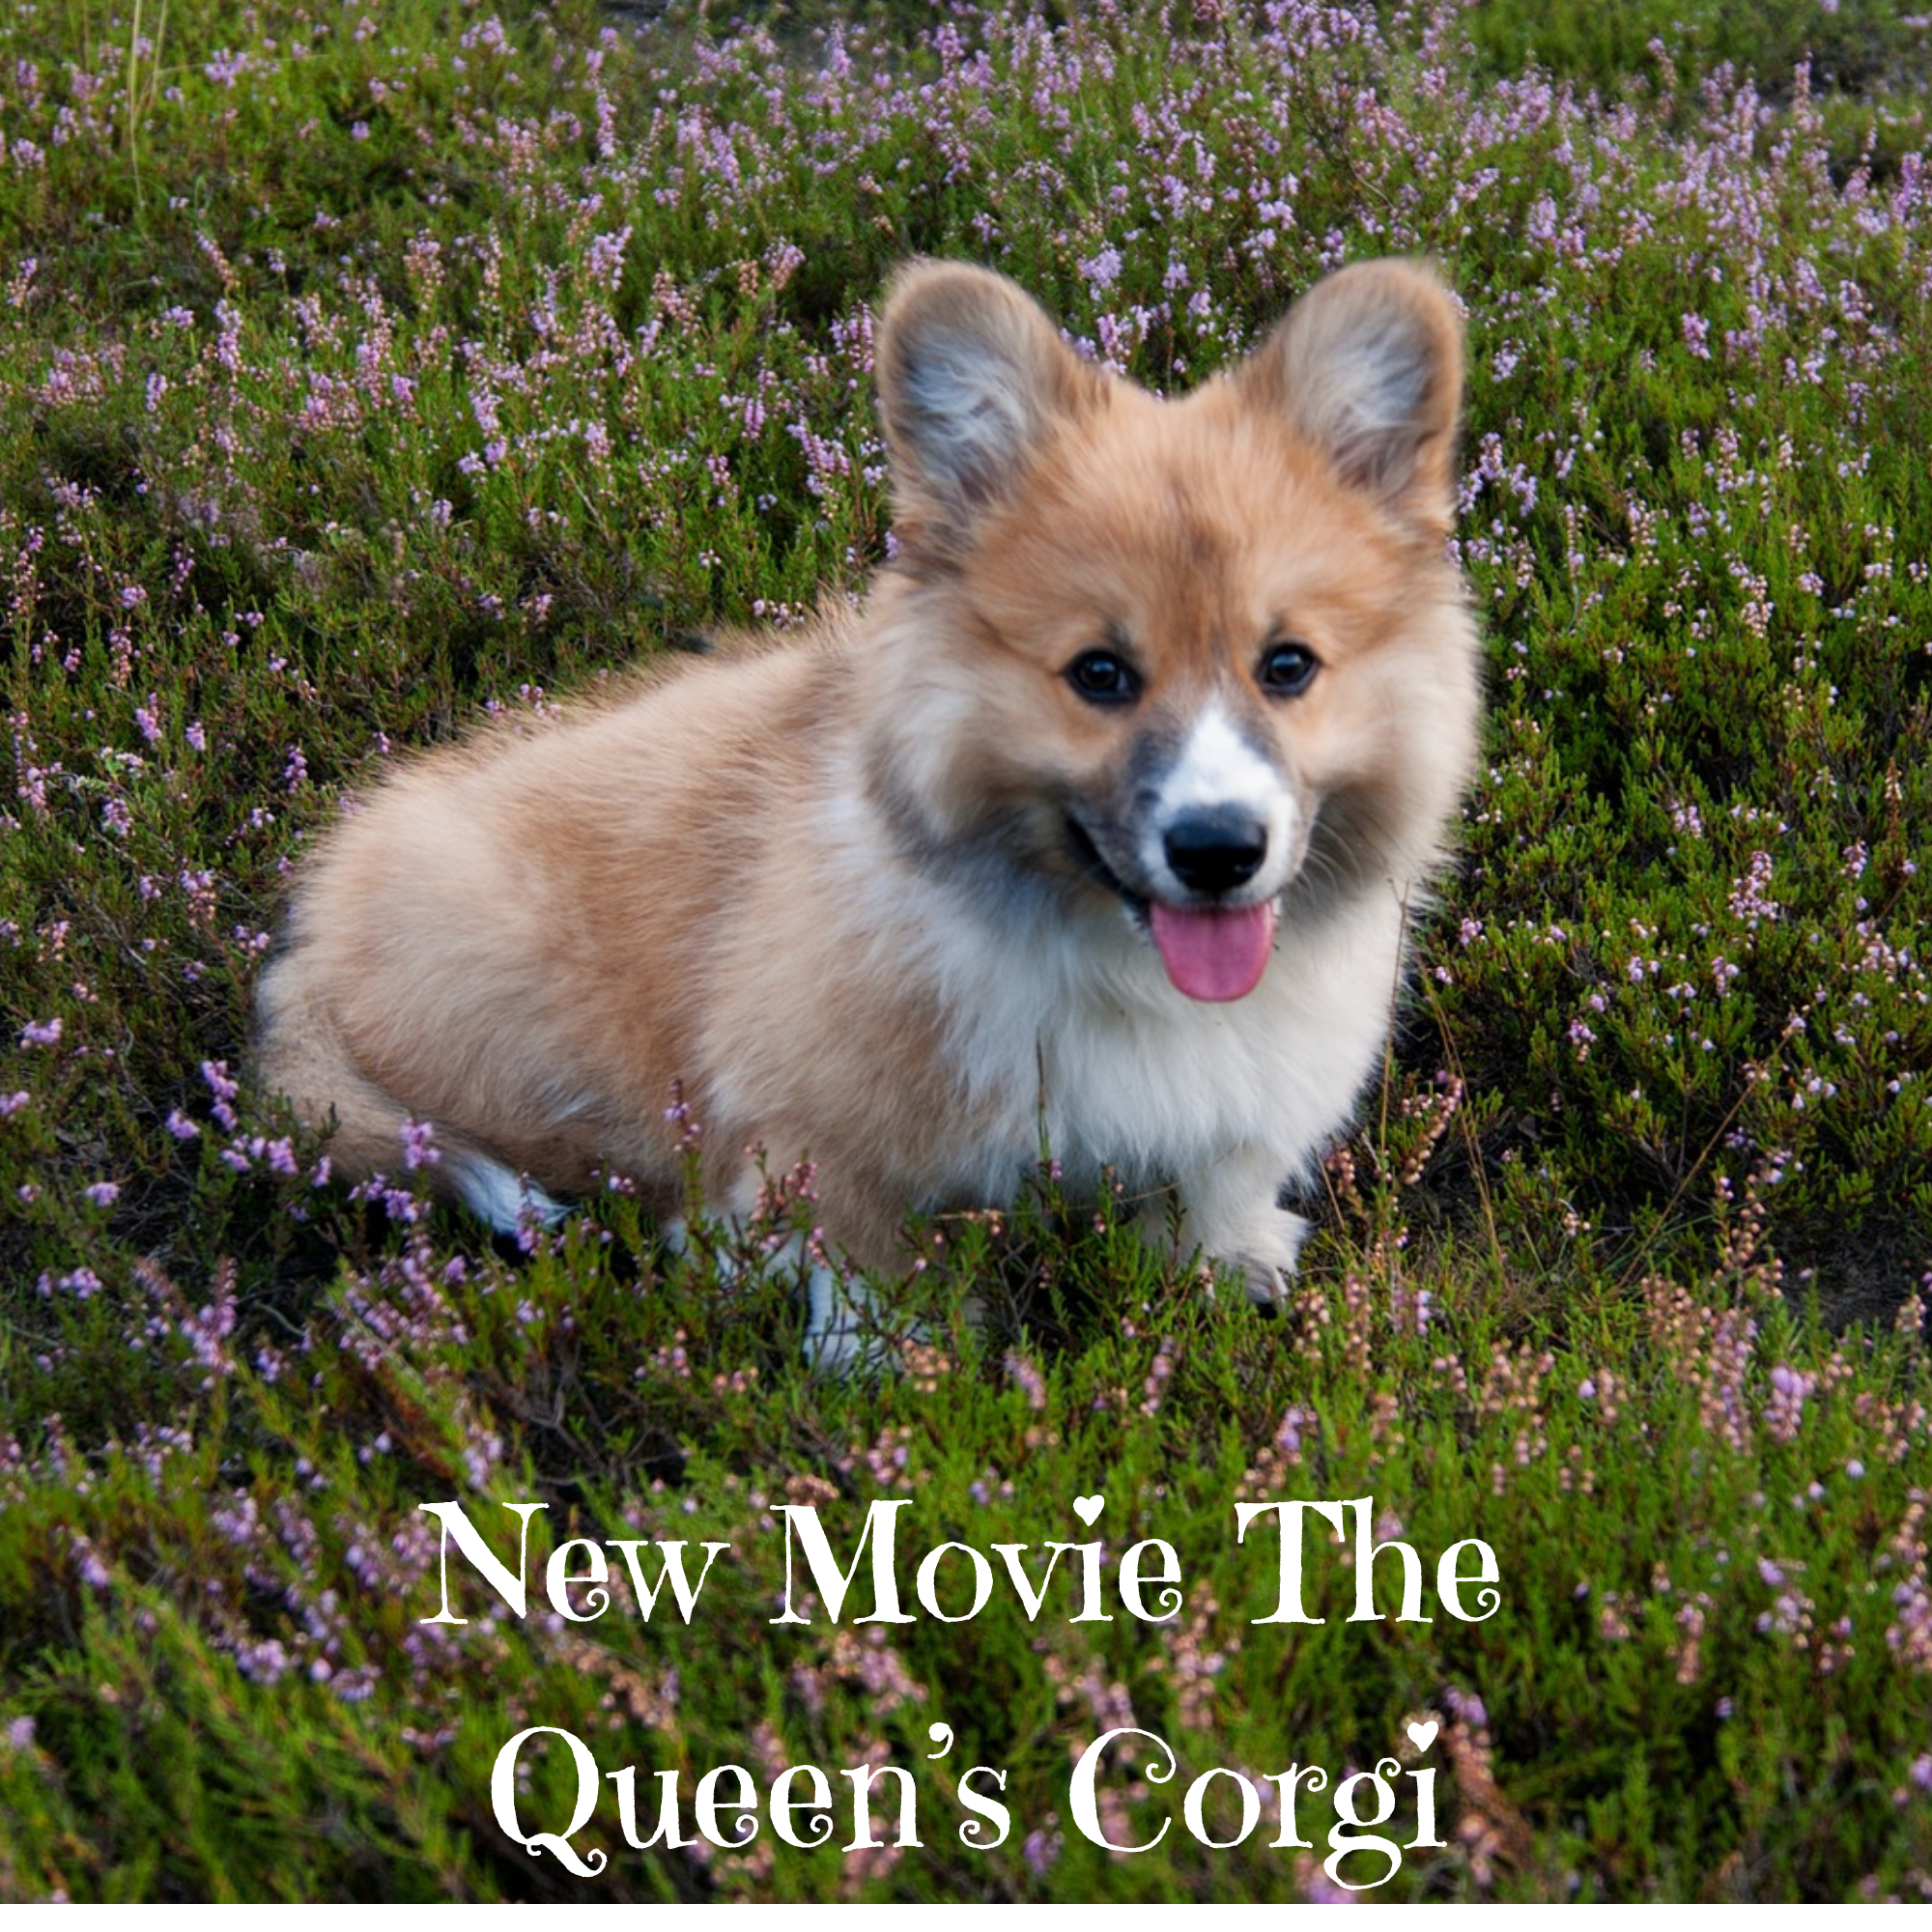 New Movie The Queen's Corgi